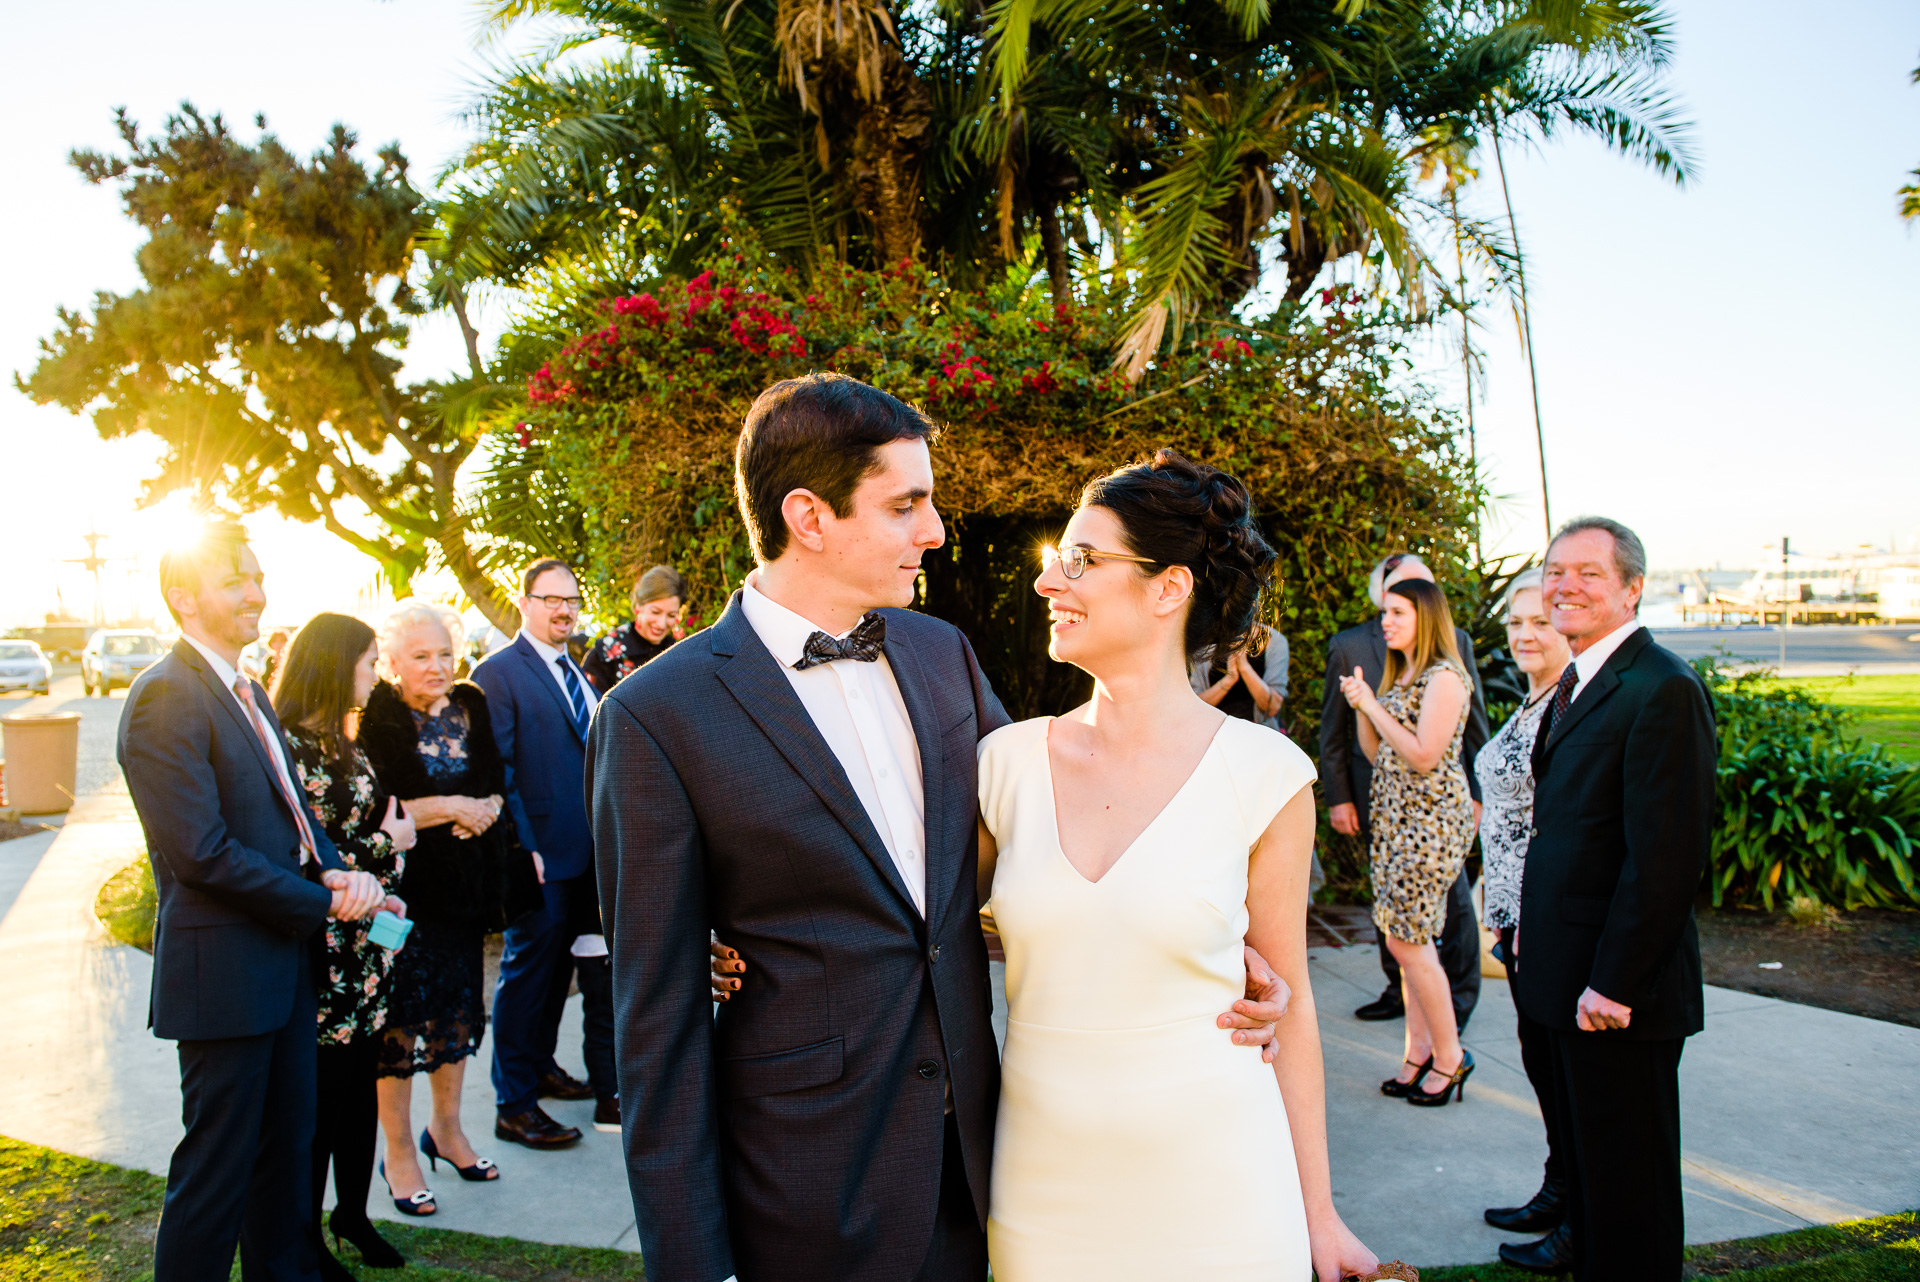 12.29.17 - Michelle and Tommaso Wedding - San Diego Courthouse -  Paul Douda Photography - 166.jpg